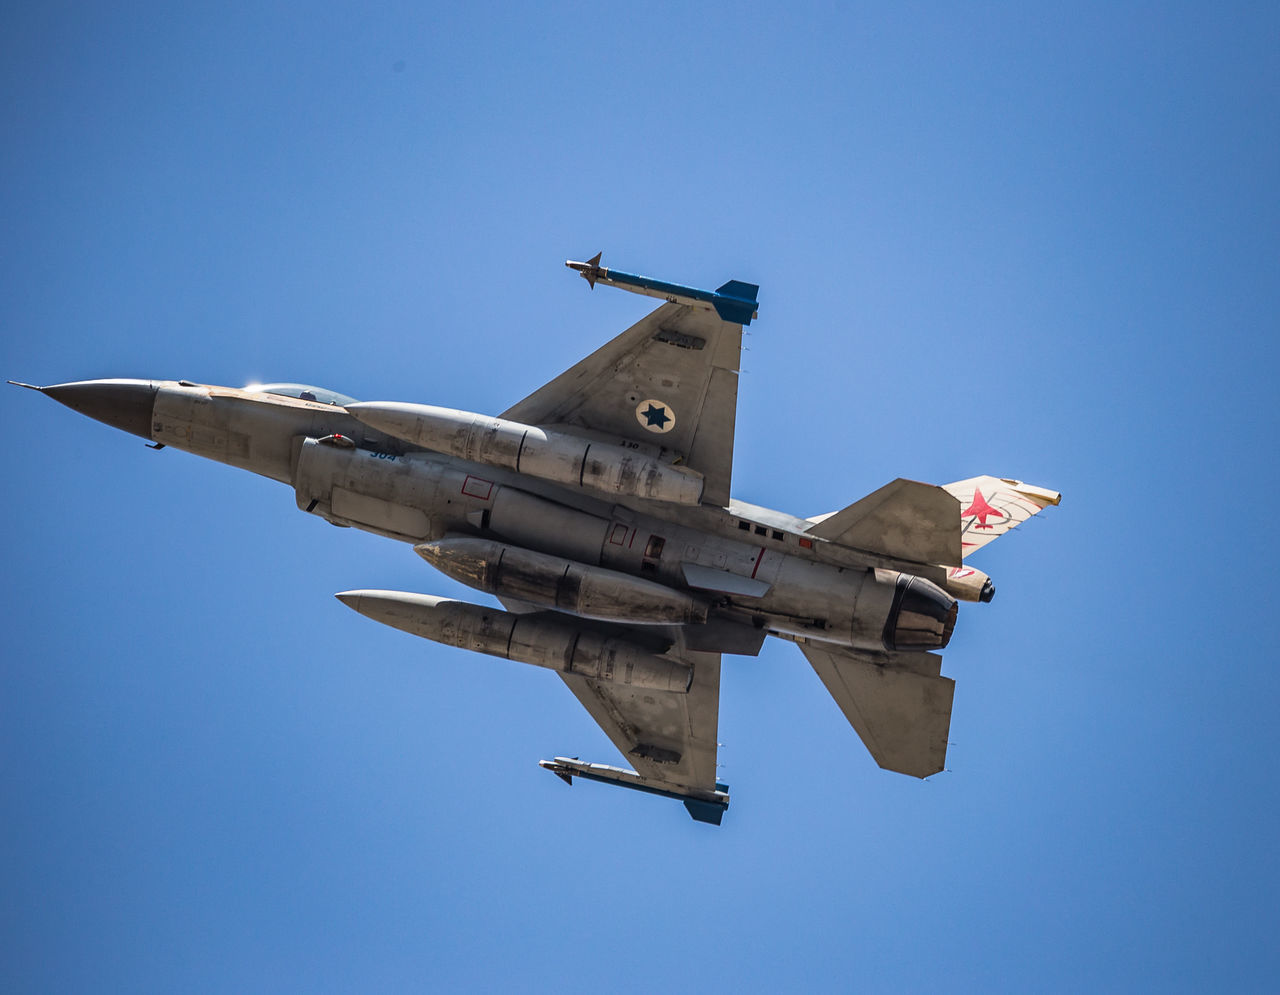 Air Force Air Vehicle Airplane Aviation Blue Blue Sky Clear Sky F-16 Fighting Falcon Flight Flying General Dynamics IAF Israeli Air Force Military Transportation